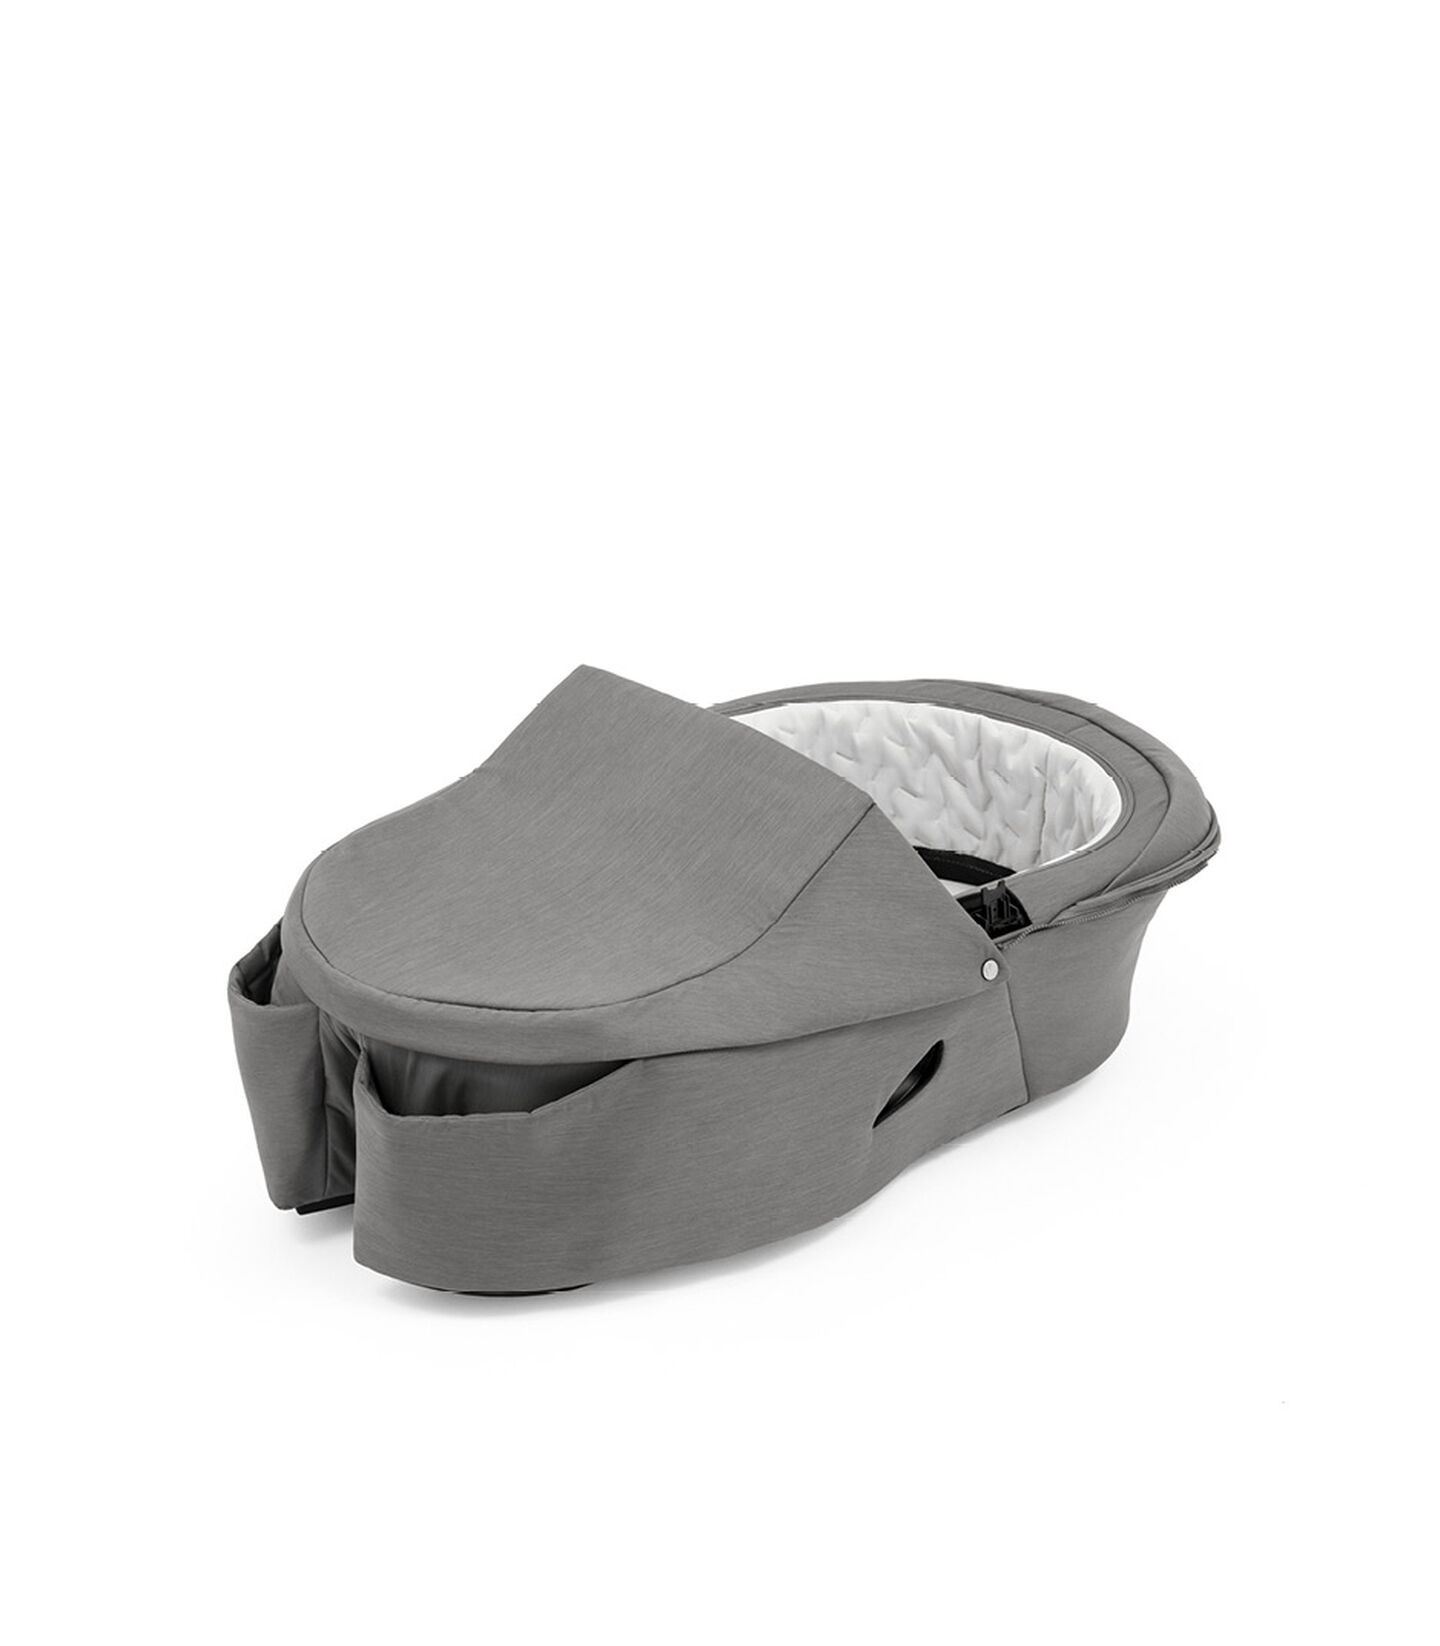 Stokke® Xplory® X Modern Grey Carry Cot, no canopy. view 2